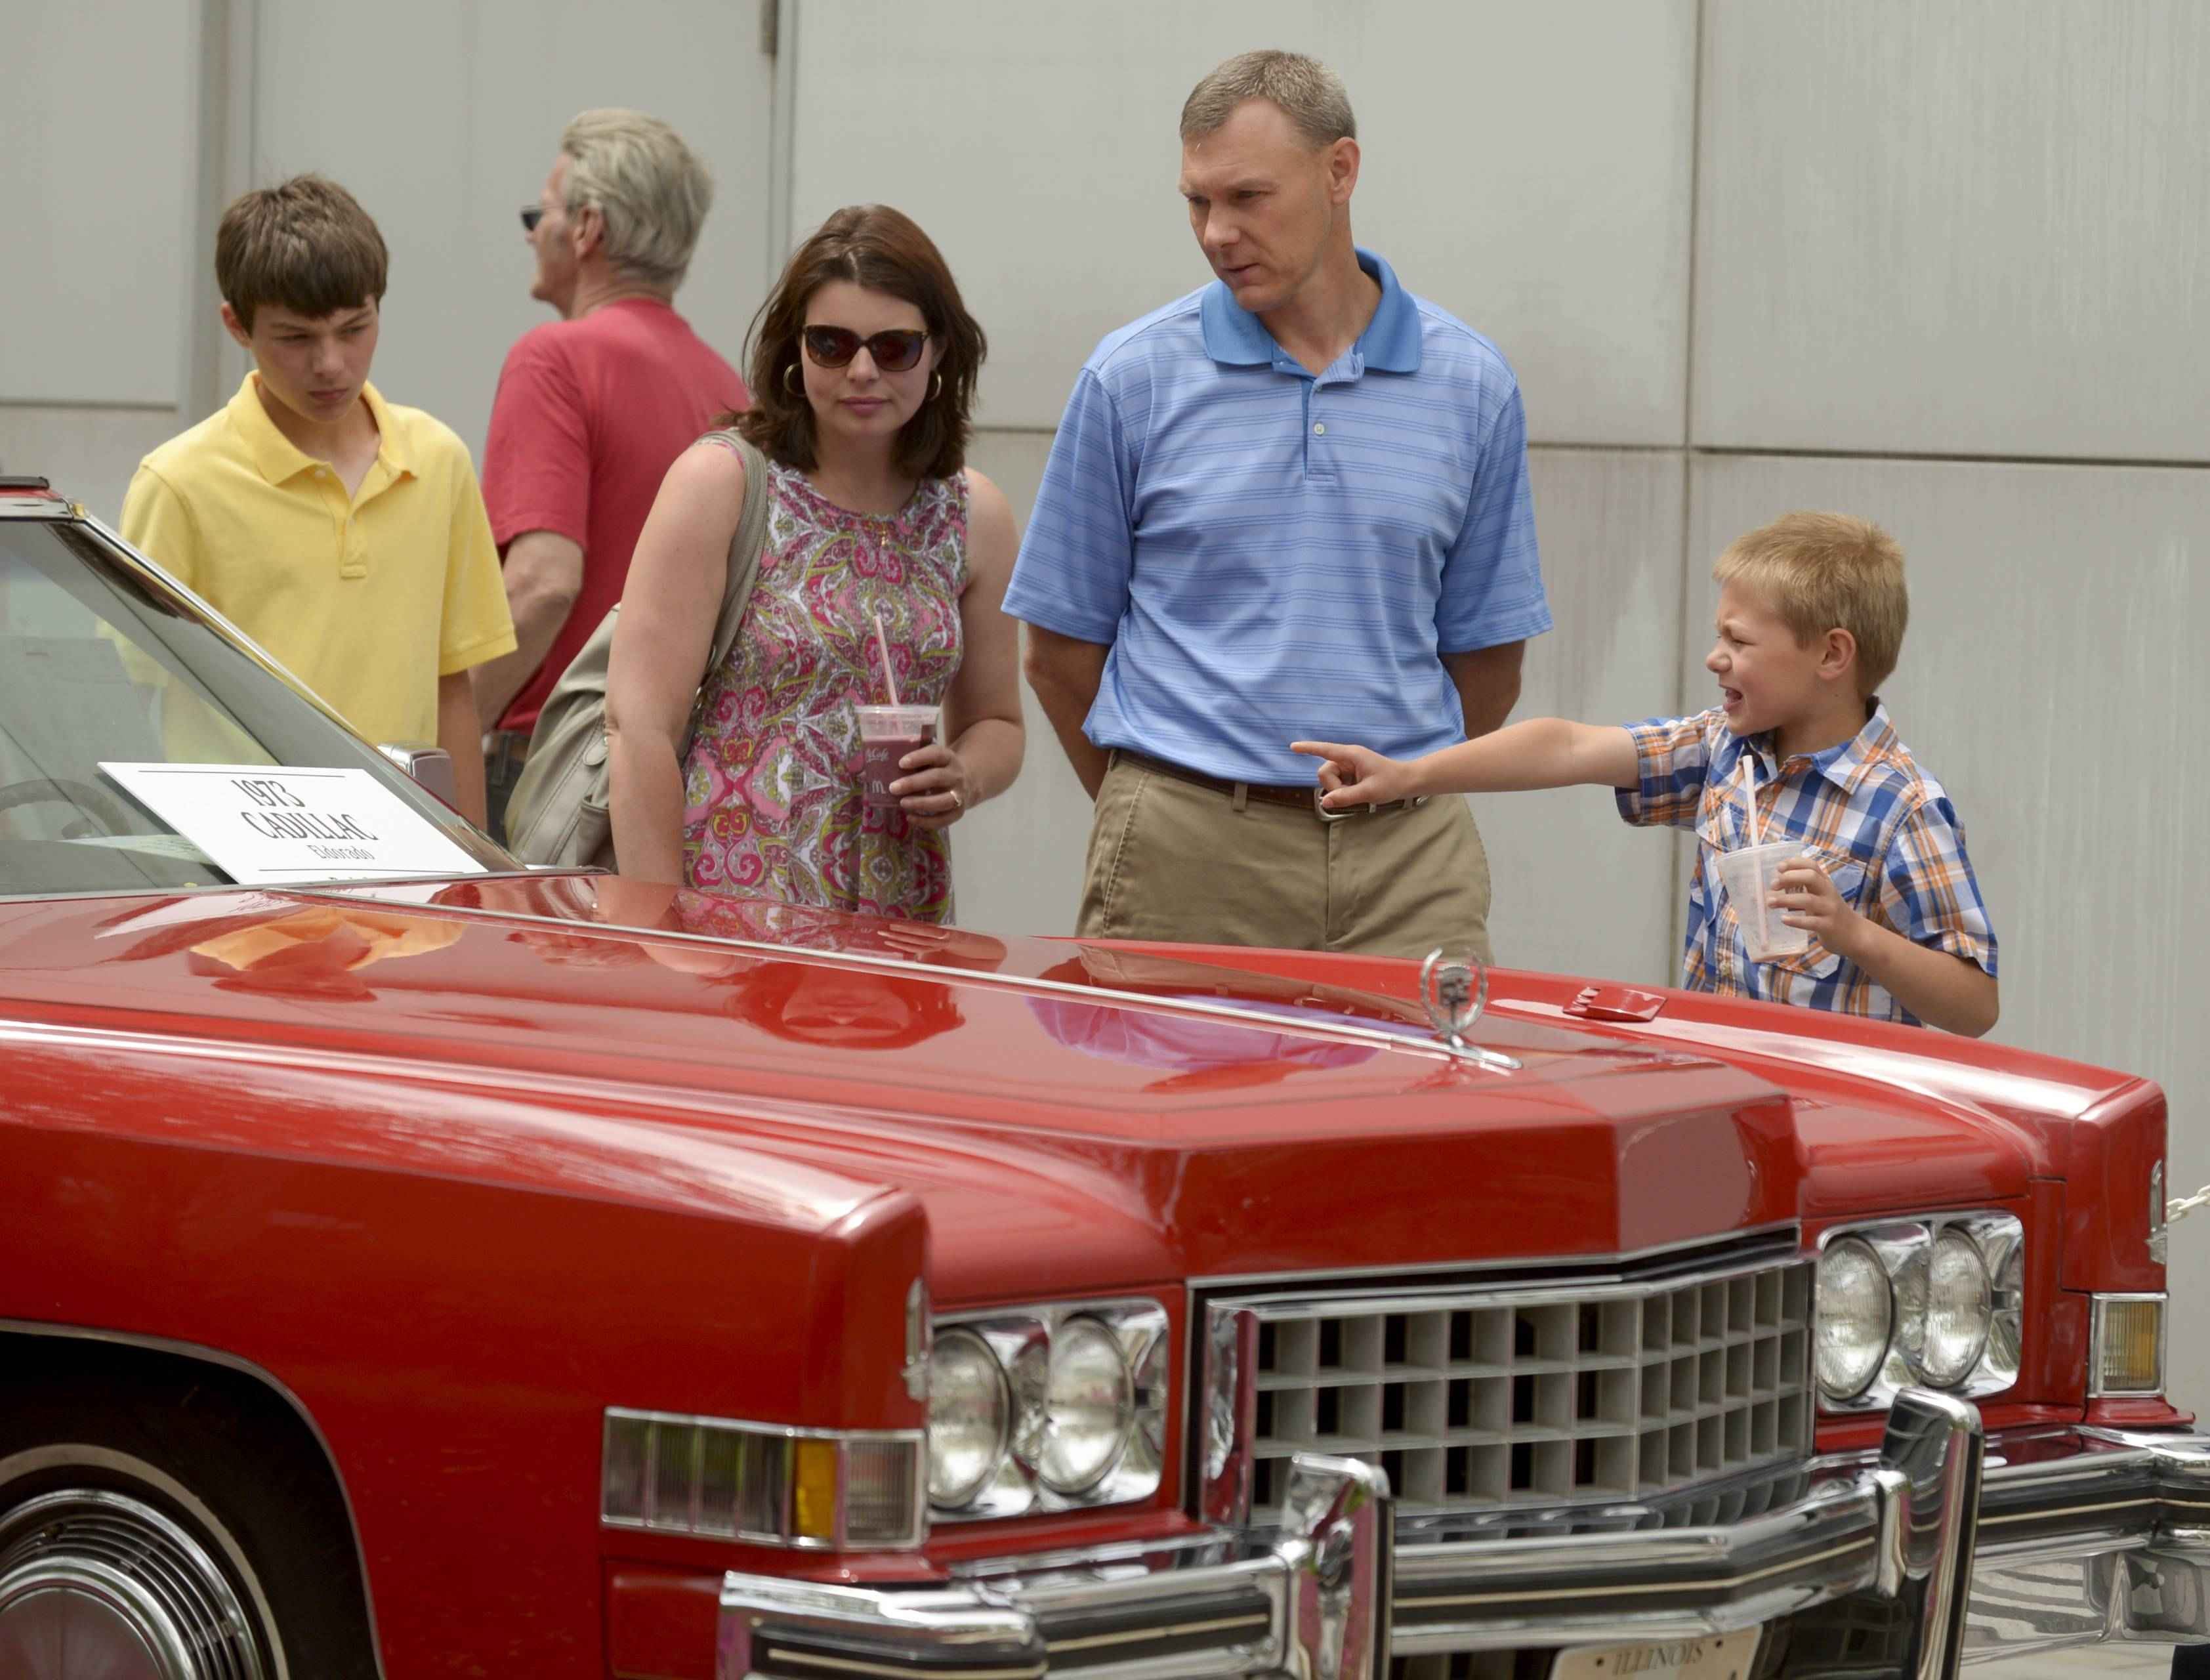 The Nicholaus family of La Grange Park -- Christina and Bret with sons Grant, 14, left, and Luke, 7 -- inspect a 1973 Cadillac Eldorado during the 46th annual Father's Day Classic Car Show on Sunday at Oakbrook Center.